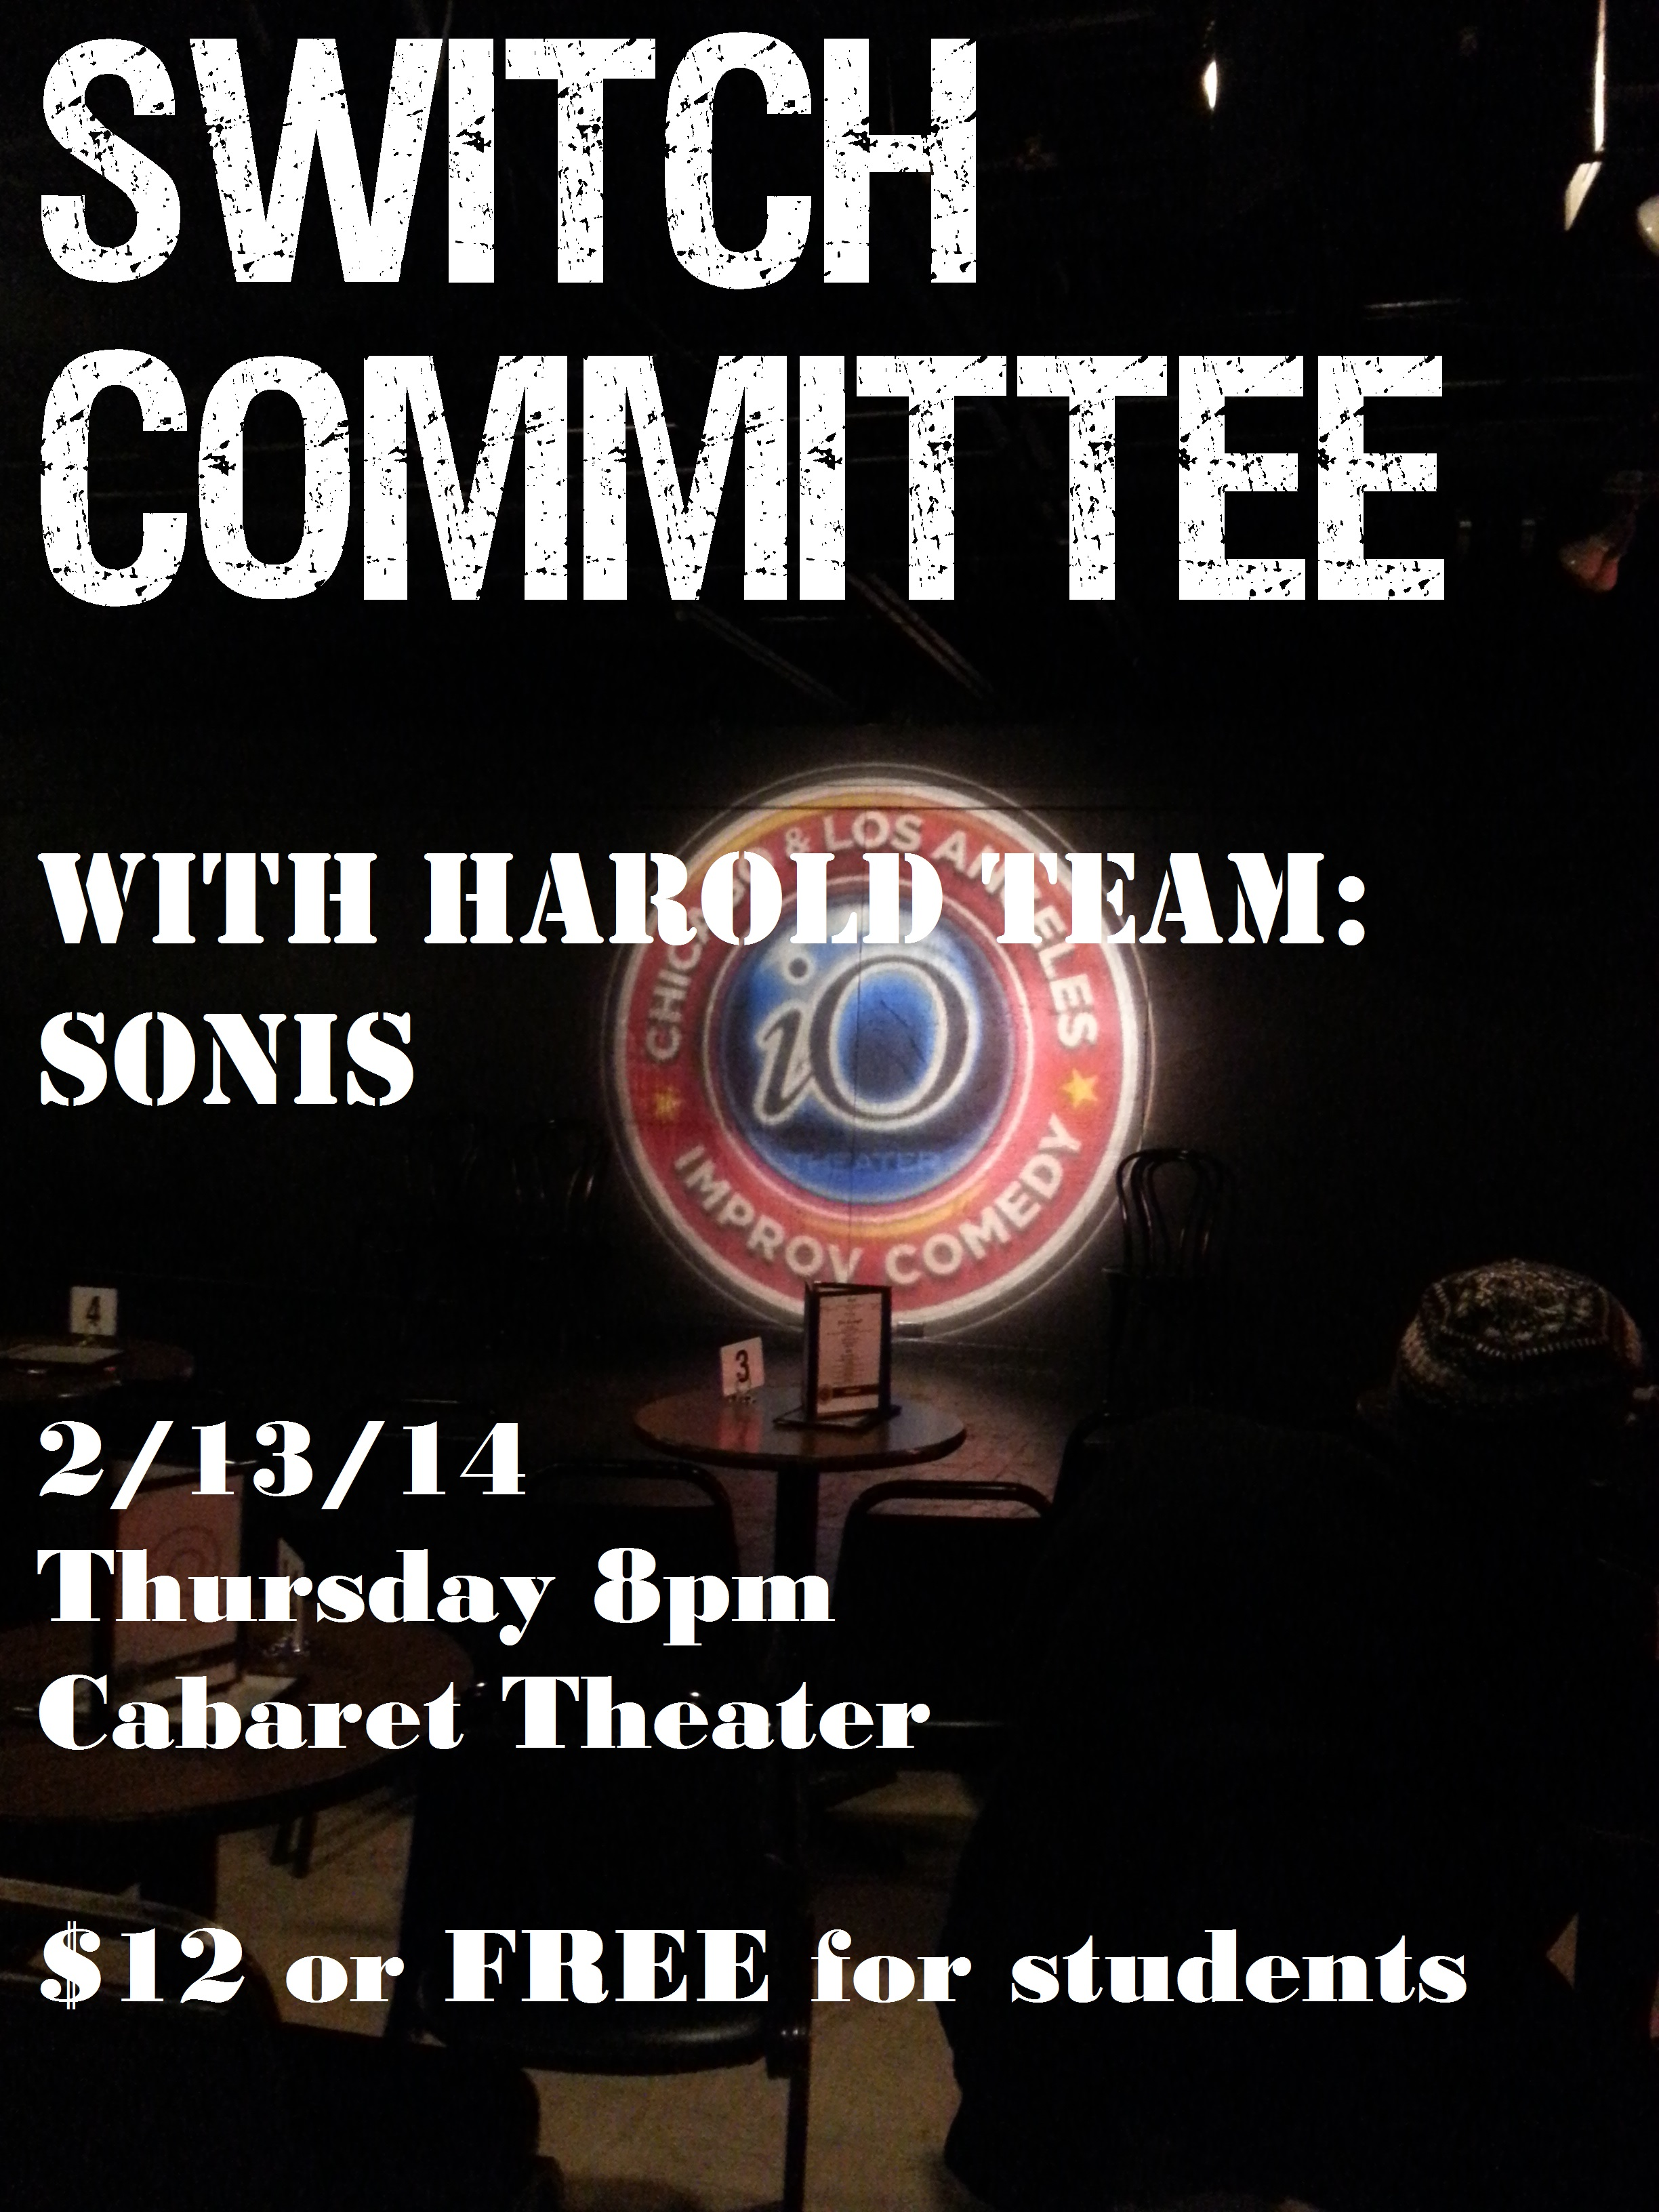 Show tonight! iO at 8pm with Harold Team Sonis